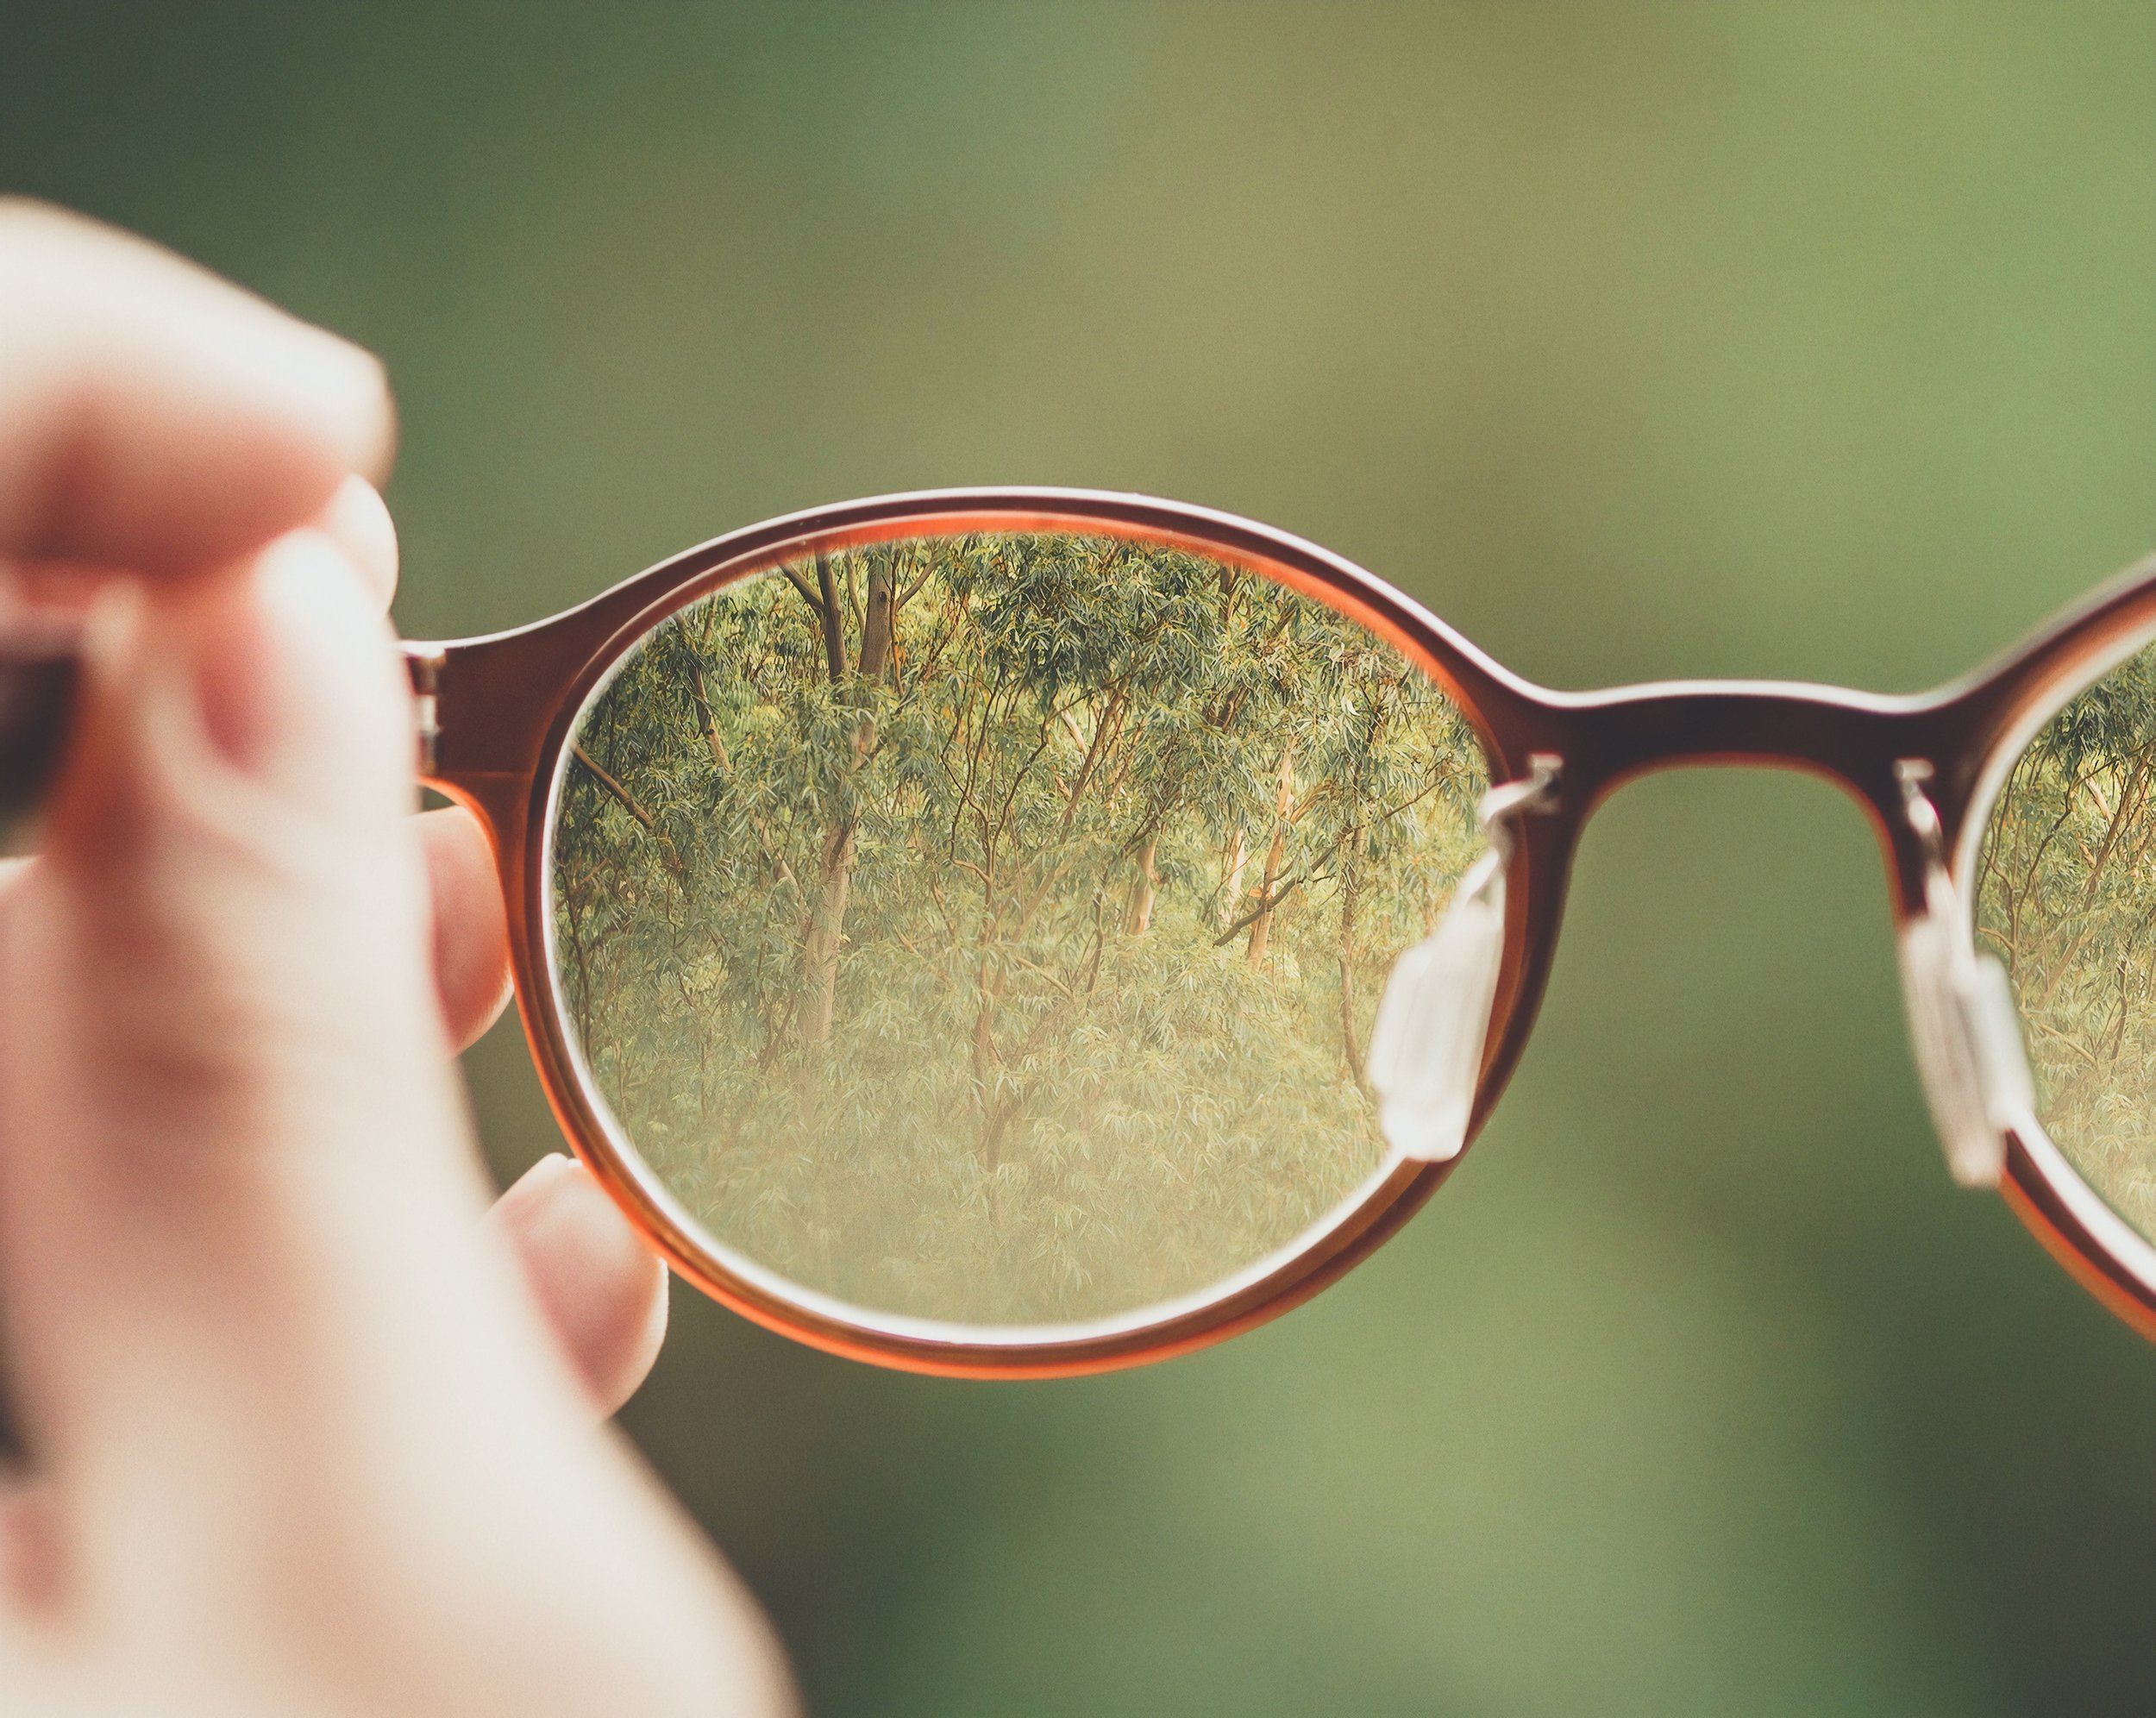 [Image Description: A hand holds up a pair of glasses, with one of the frames in focus, reflecting trees in a blurry distance.]